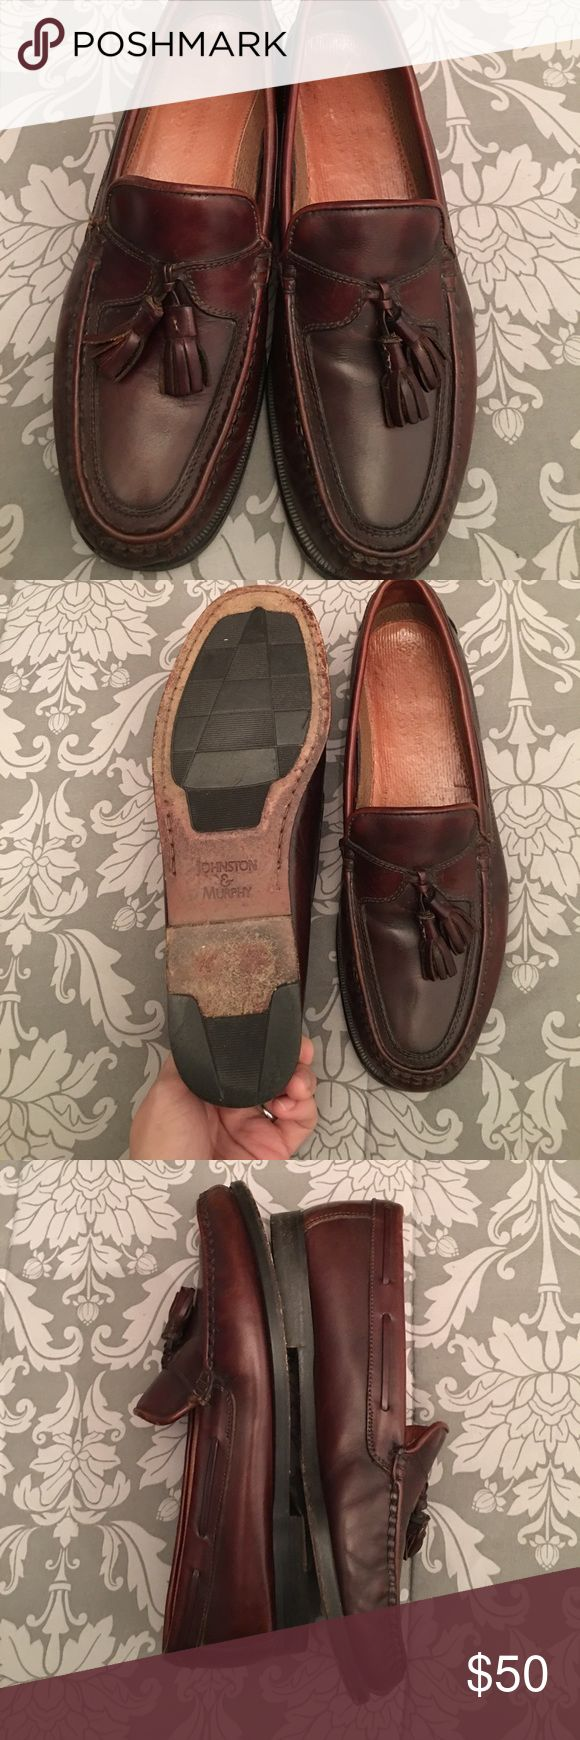 Men's Johnson and Murphy leather loafers 👞 Worn but in great shape very classic dark brown cherry wine In color Johnston & Murphy Shoes Loafers & Slip-Ons